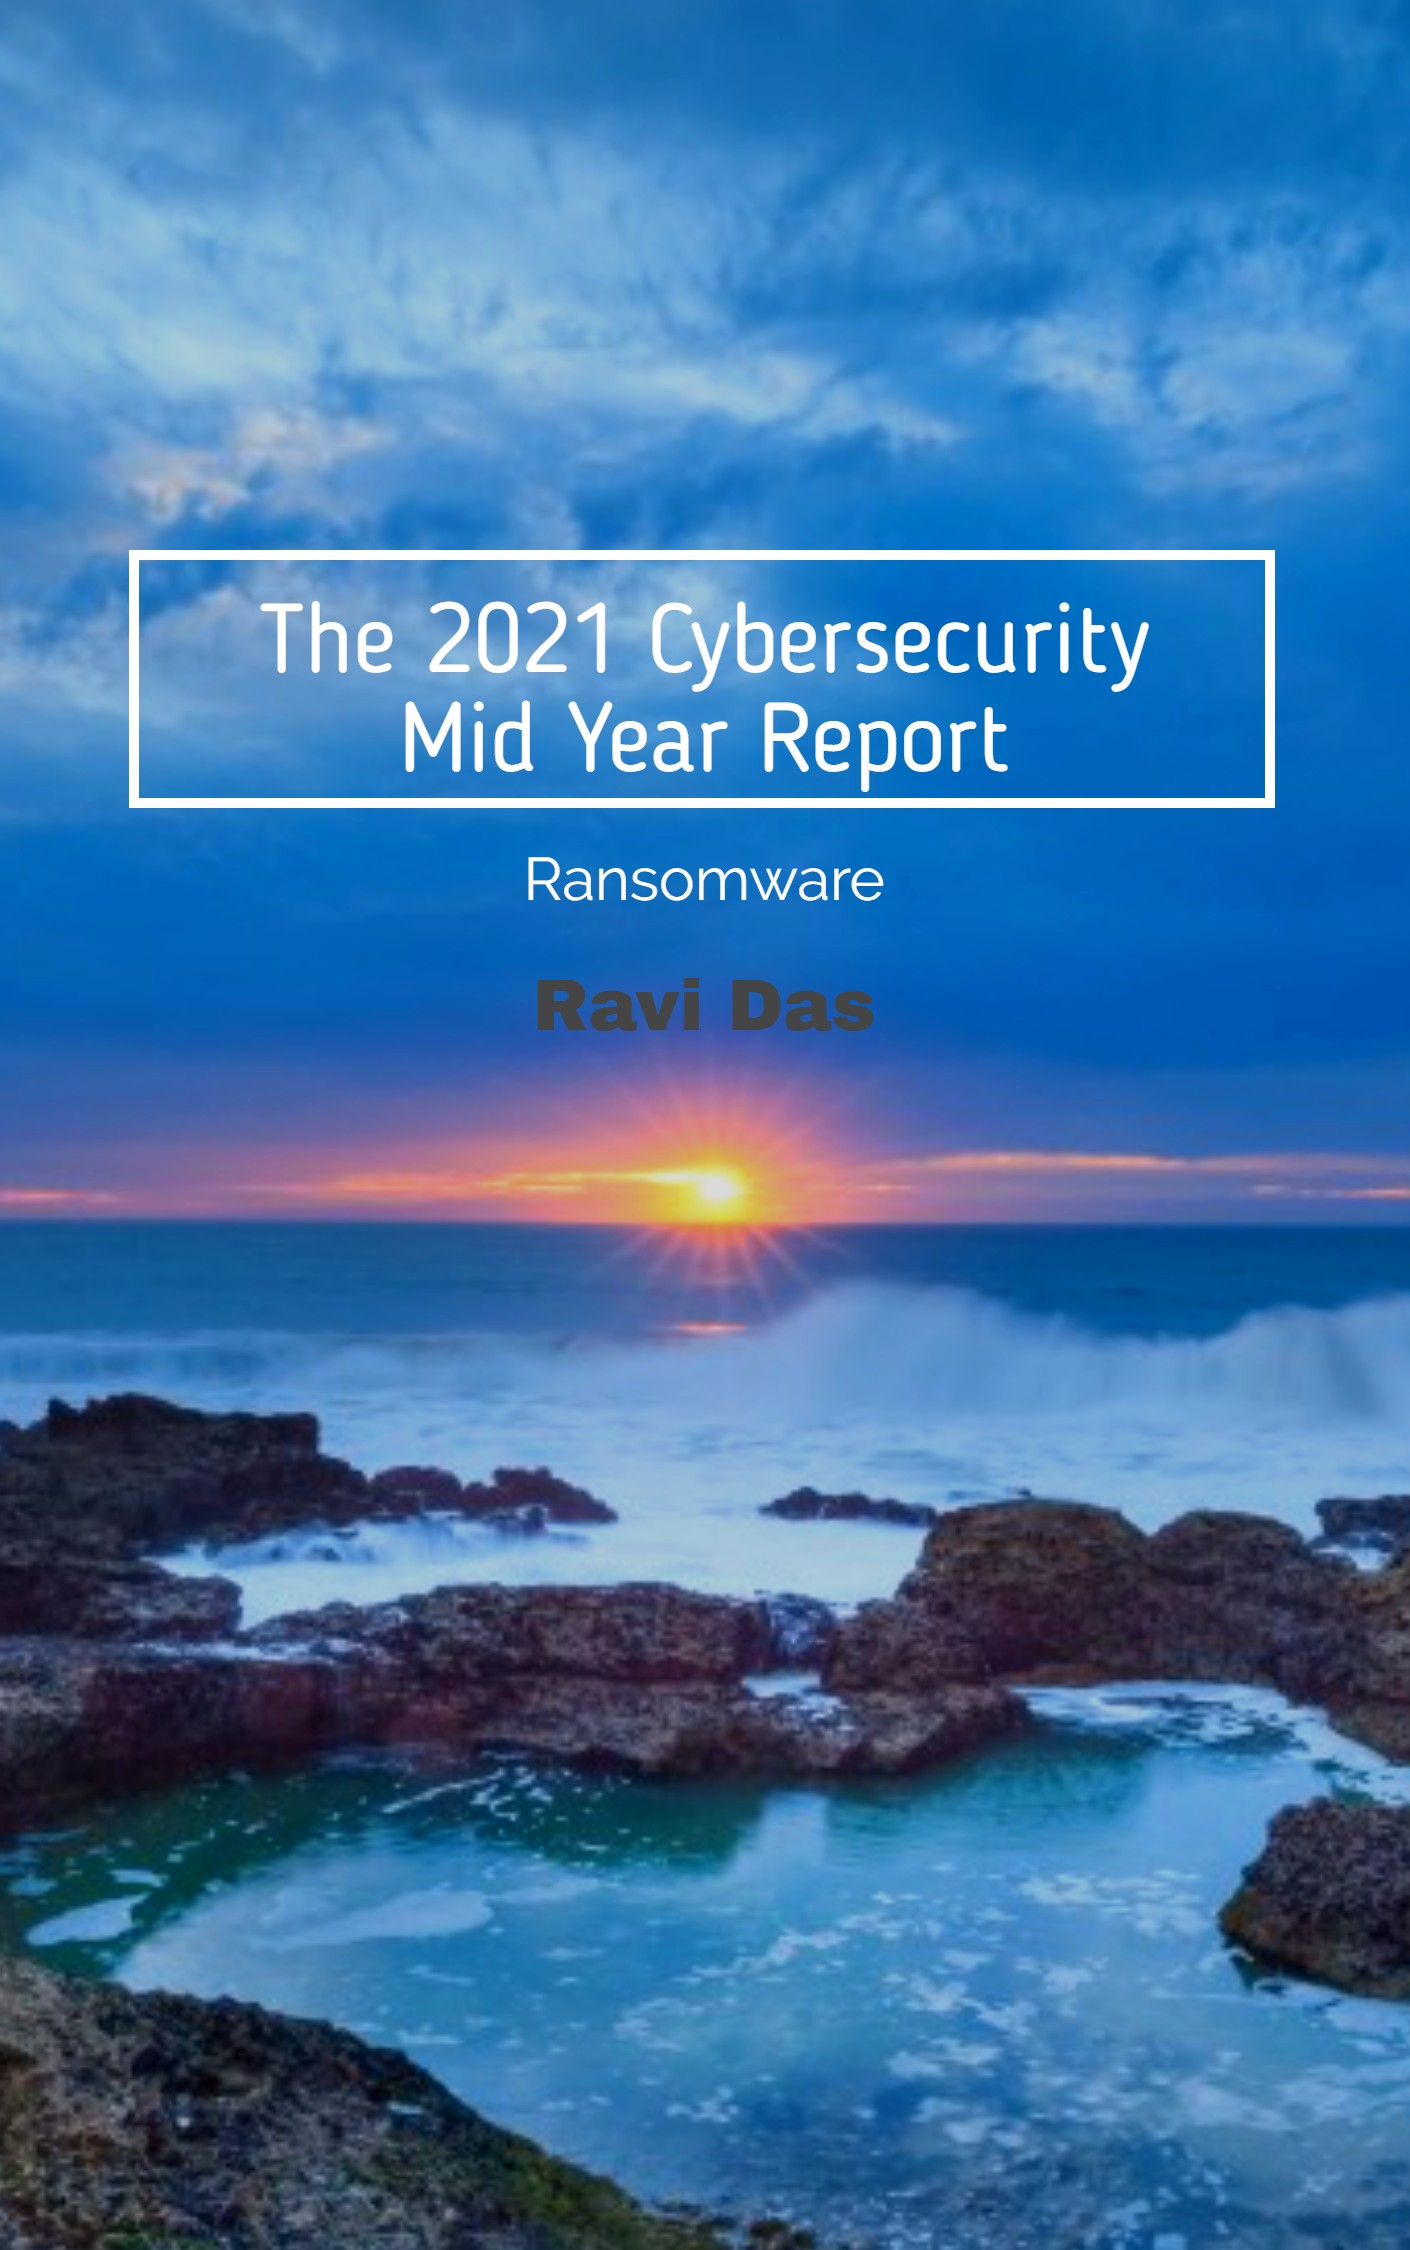 Our 2021 Mid Year Cyber Report: Ransomware